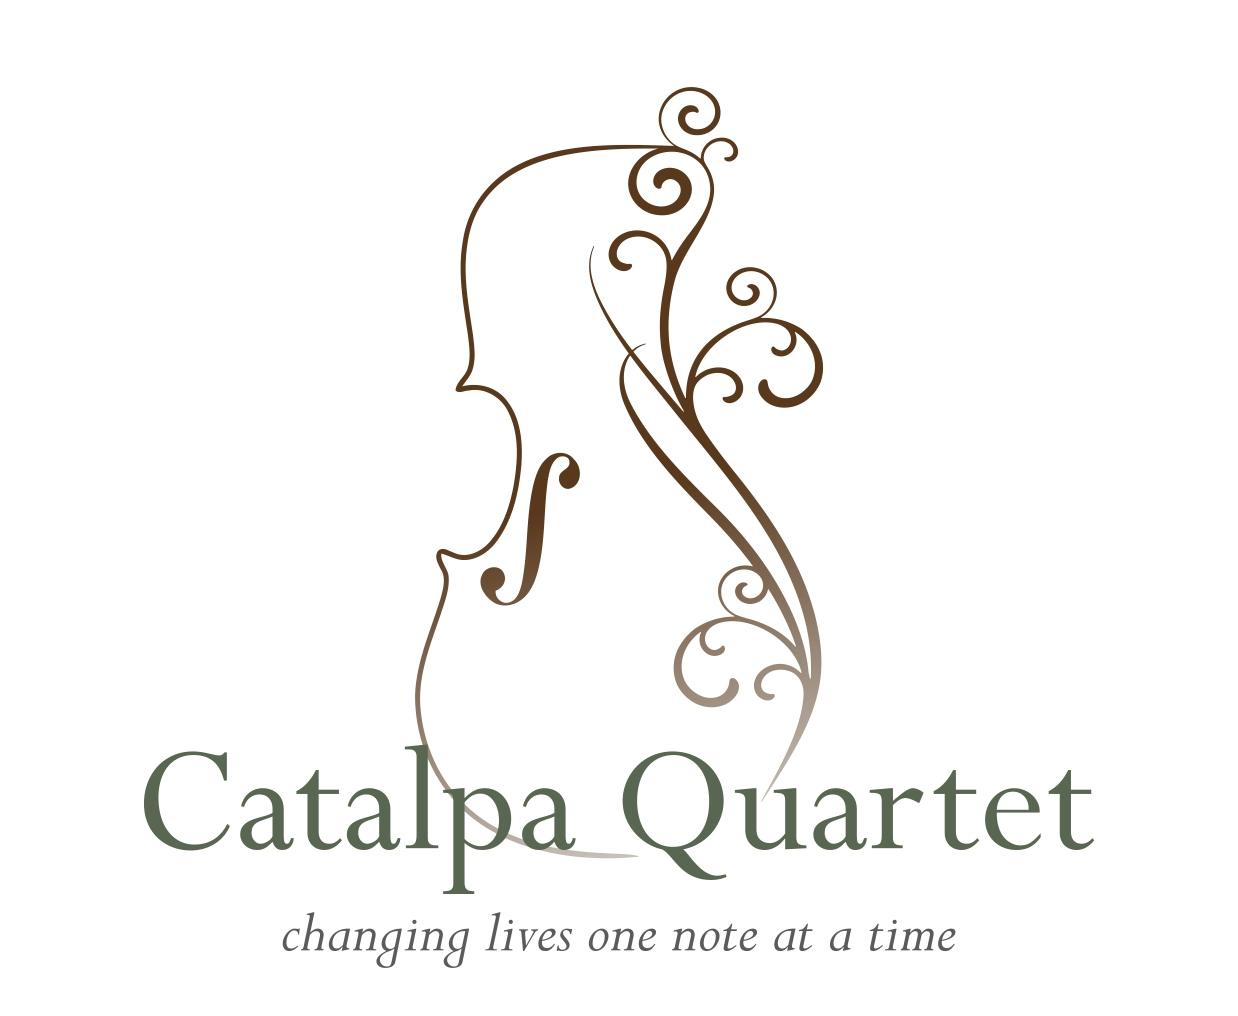 Catalpa Quartet